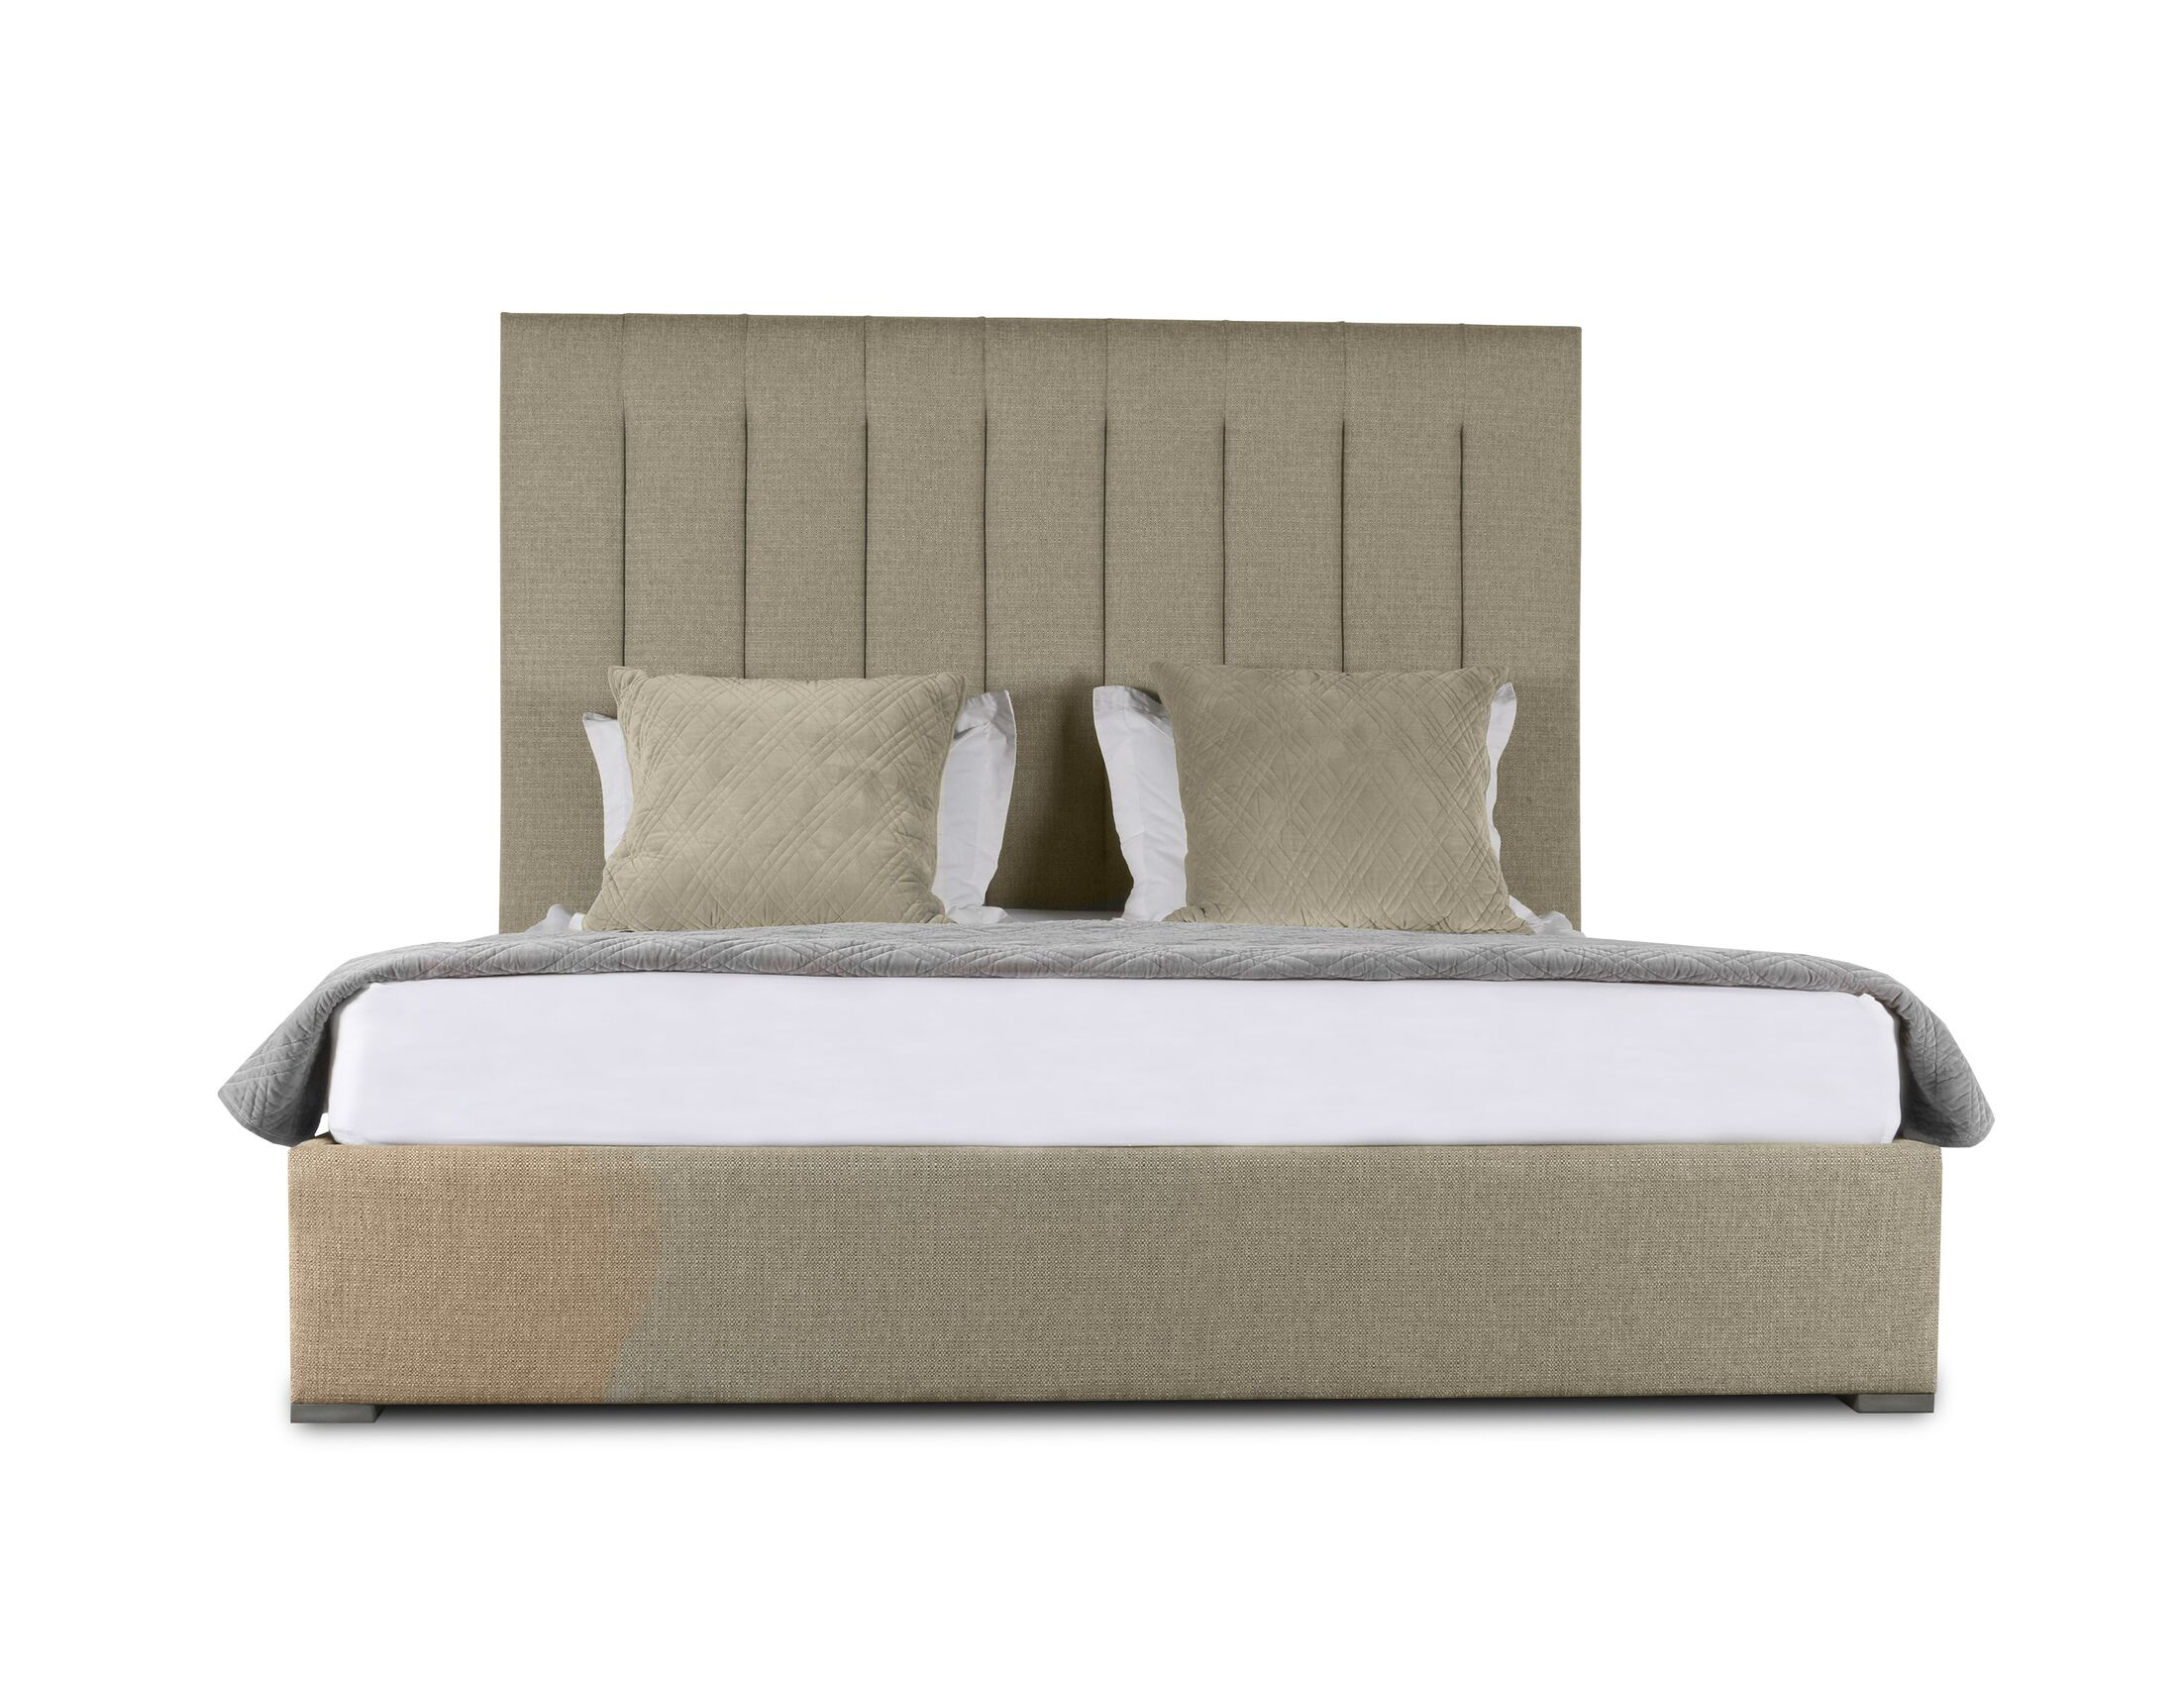 Handley Upholstered Panel Bed Size: High Height Queen, Color: Sand